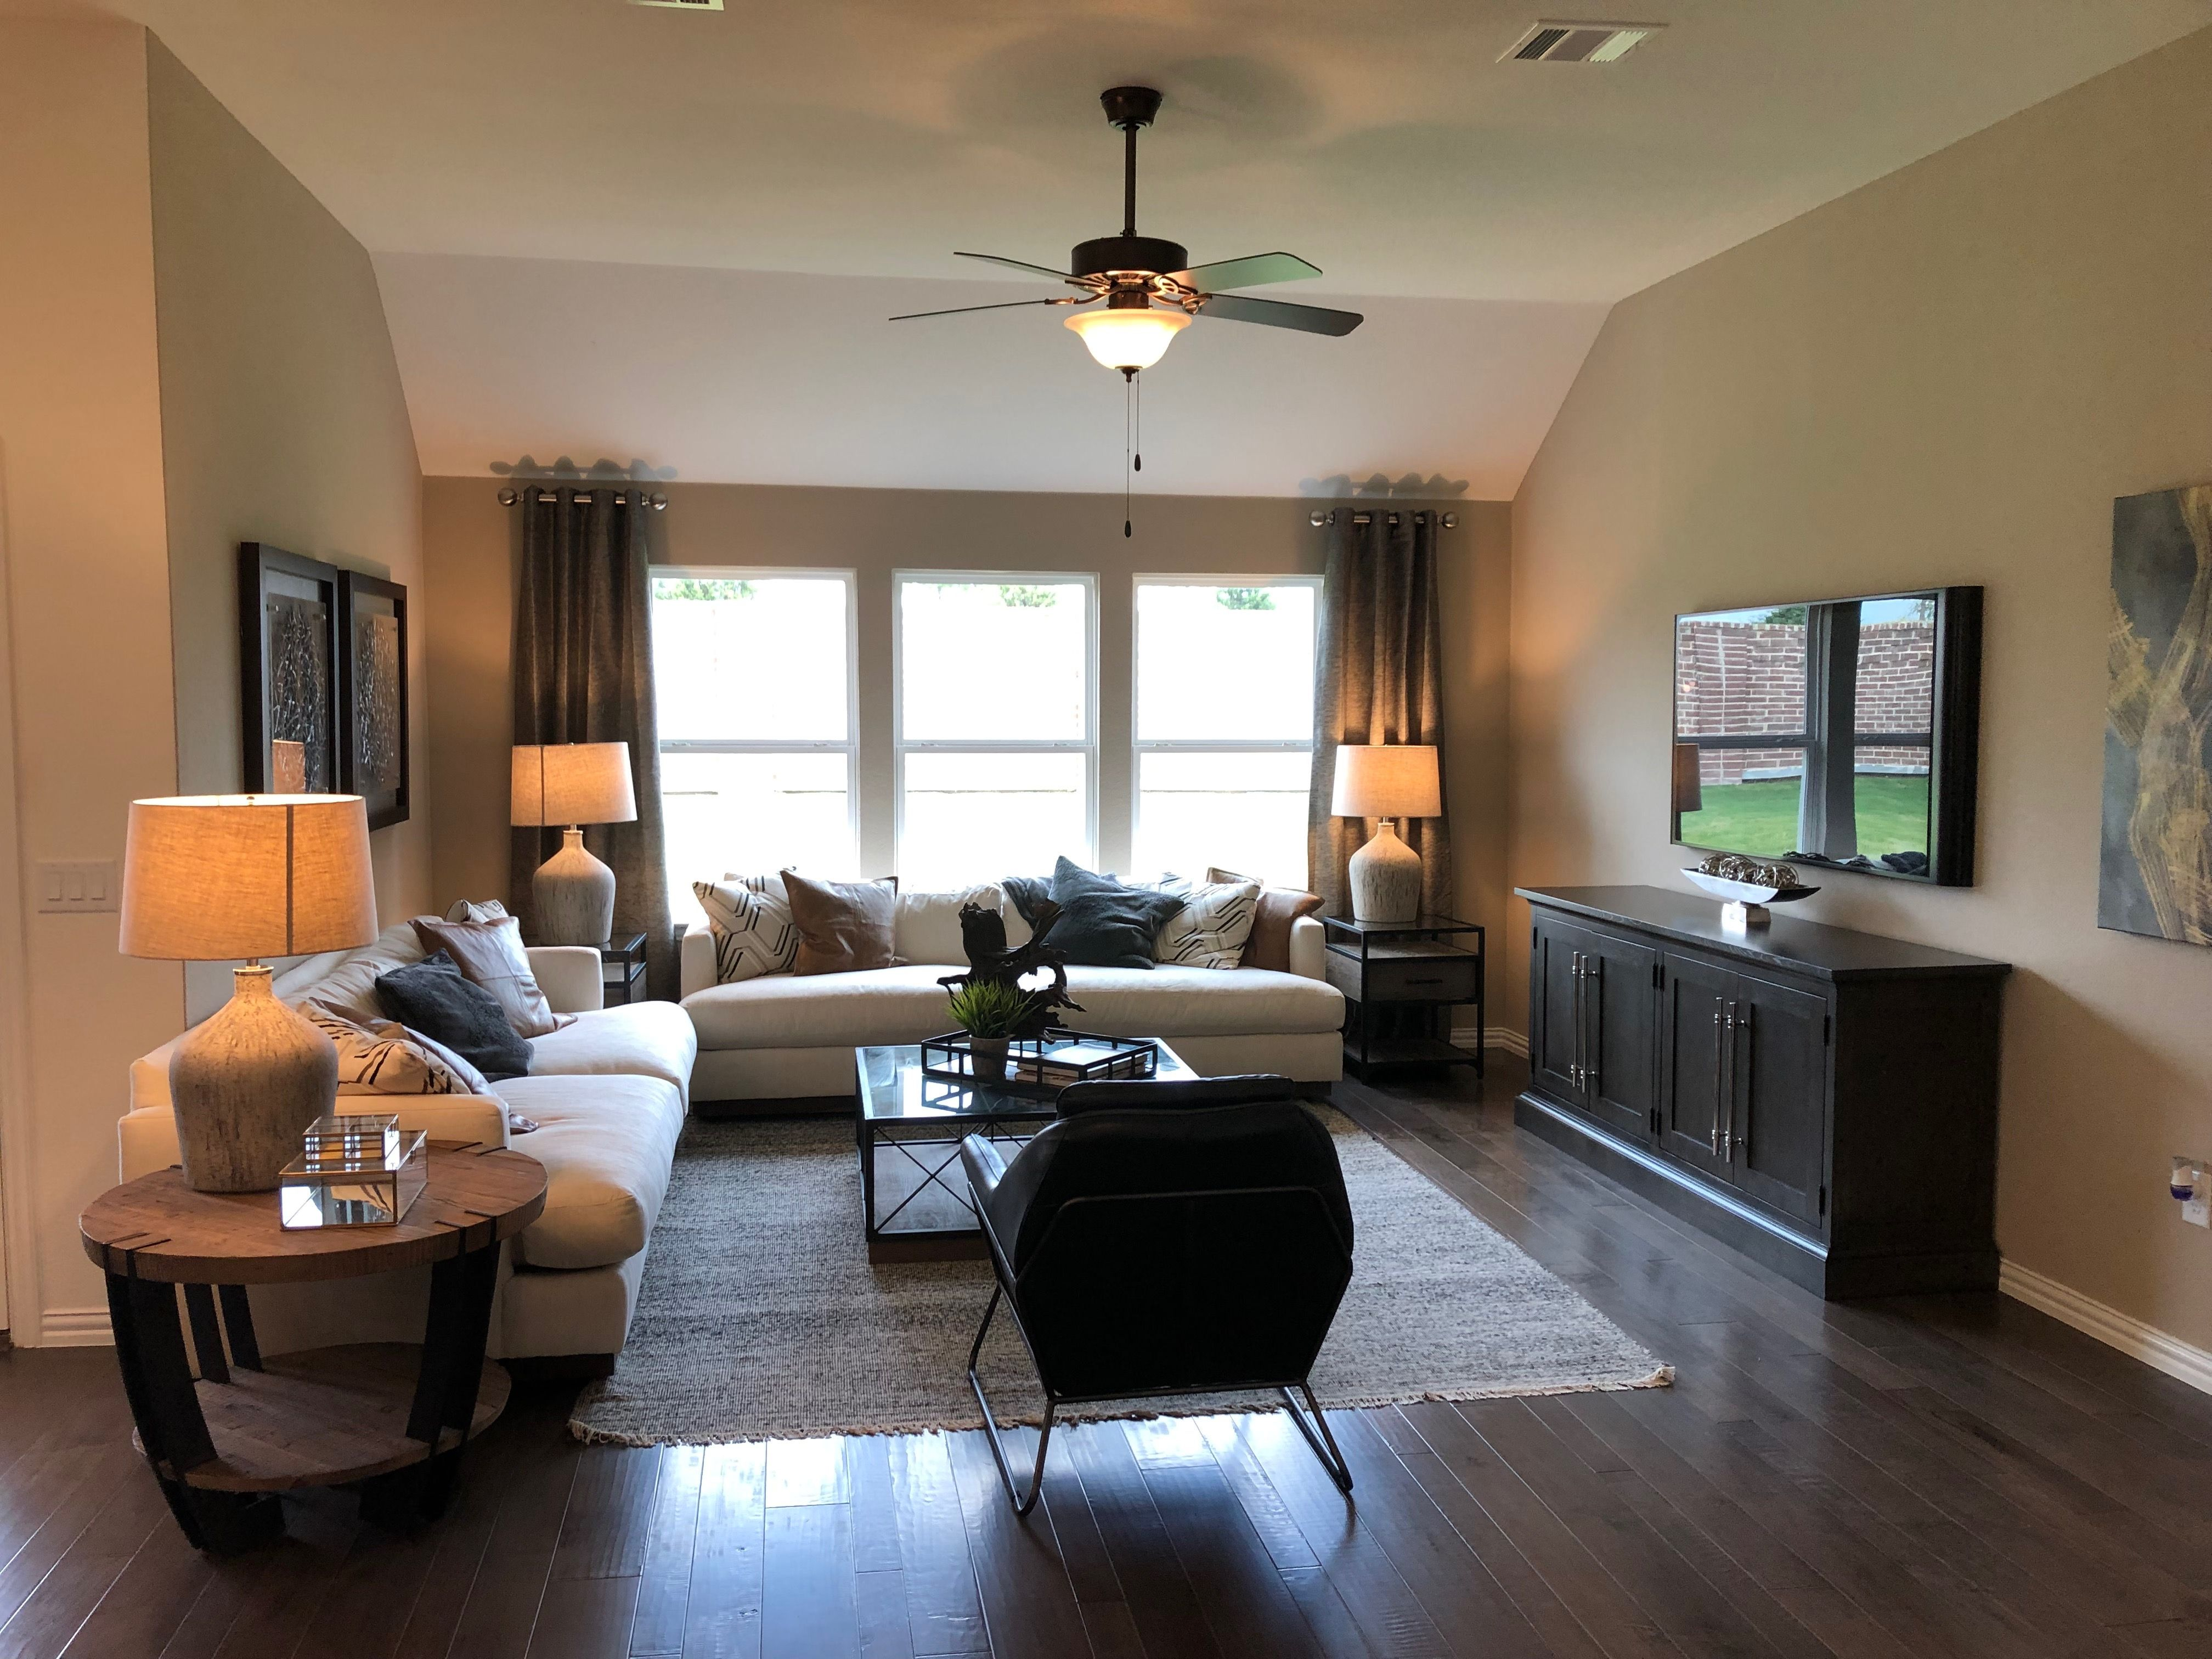 Pin by sherilee norris dfw texas re on living rooms and